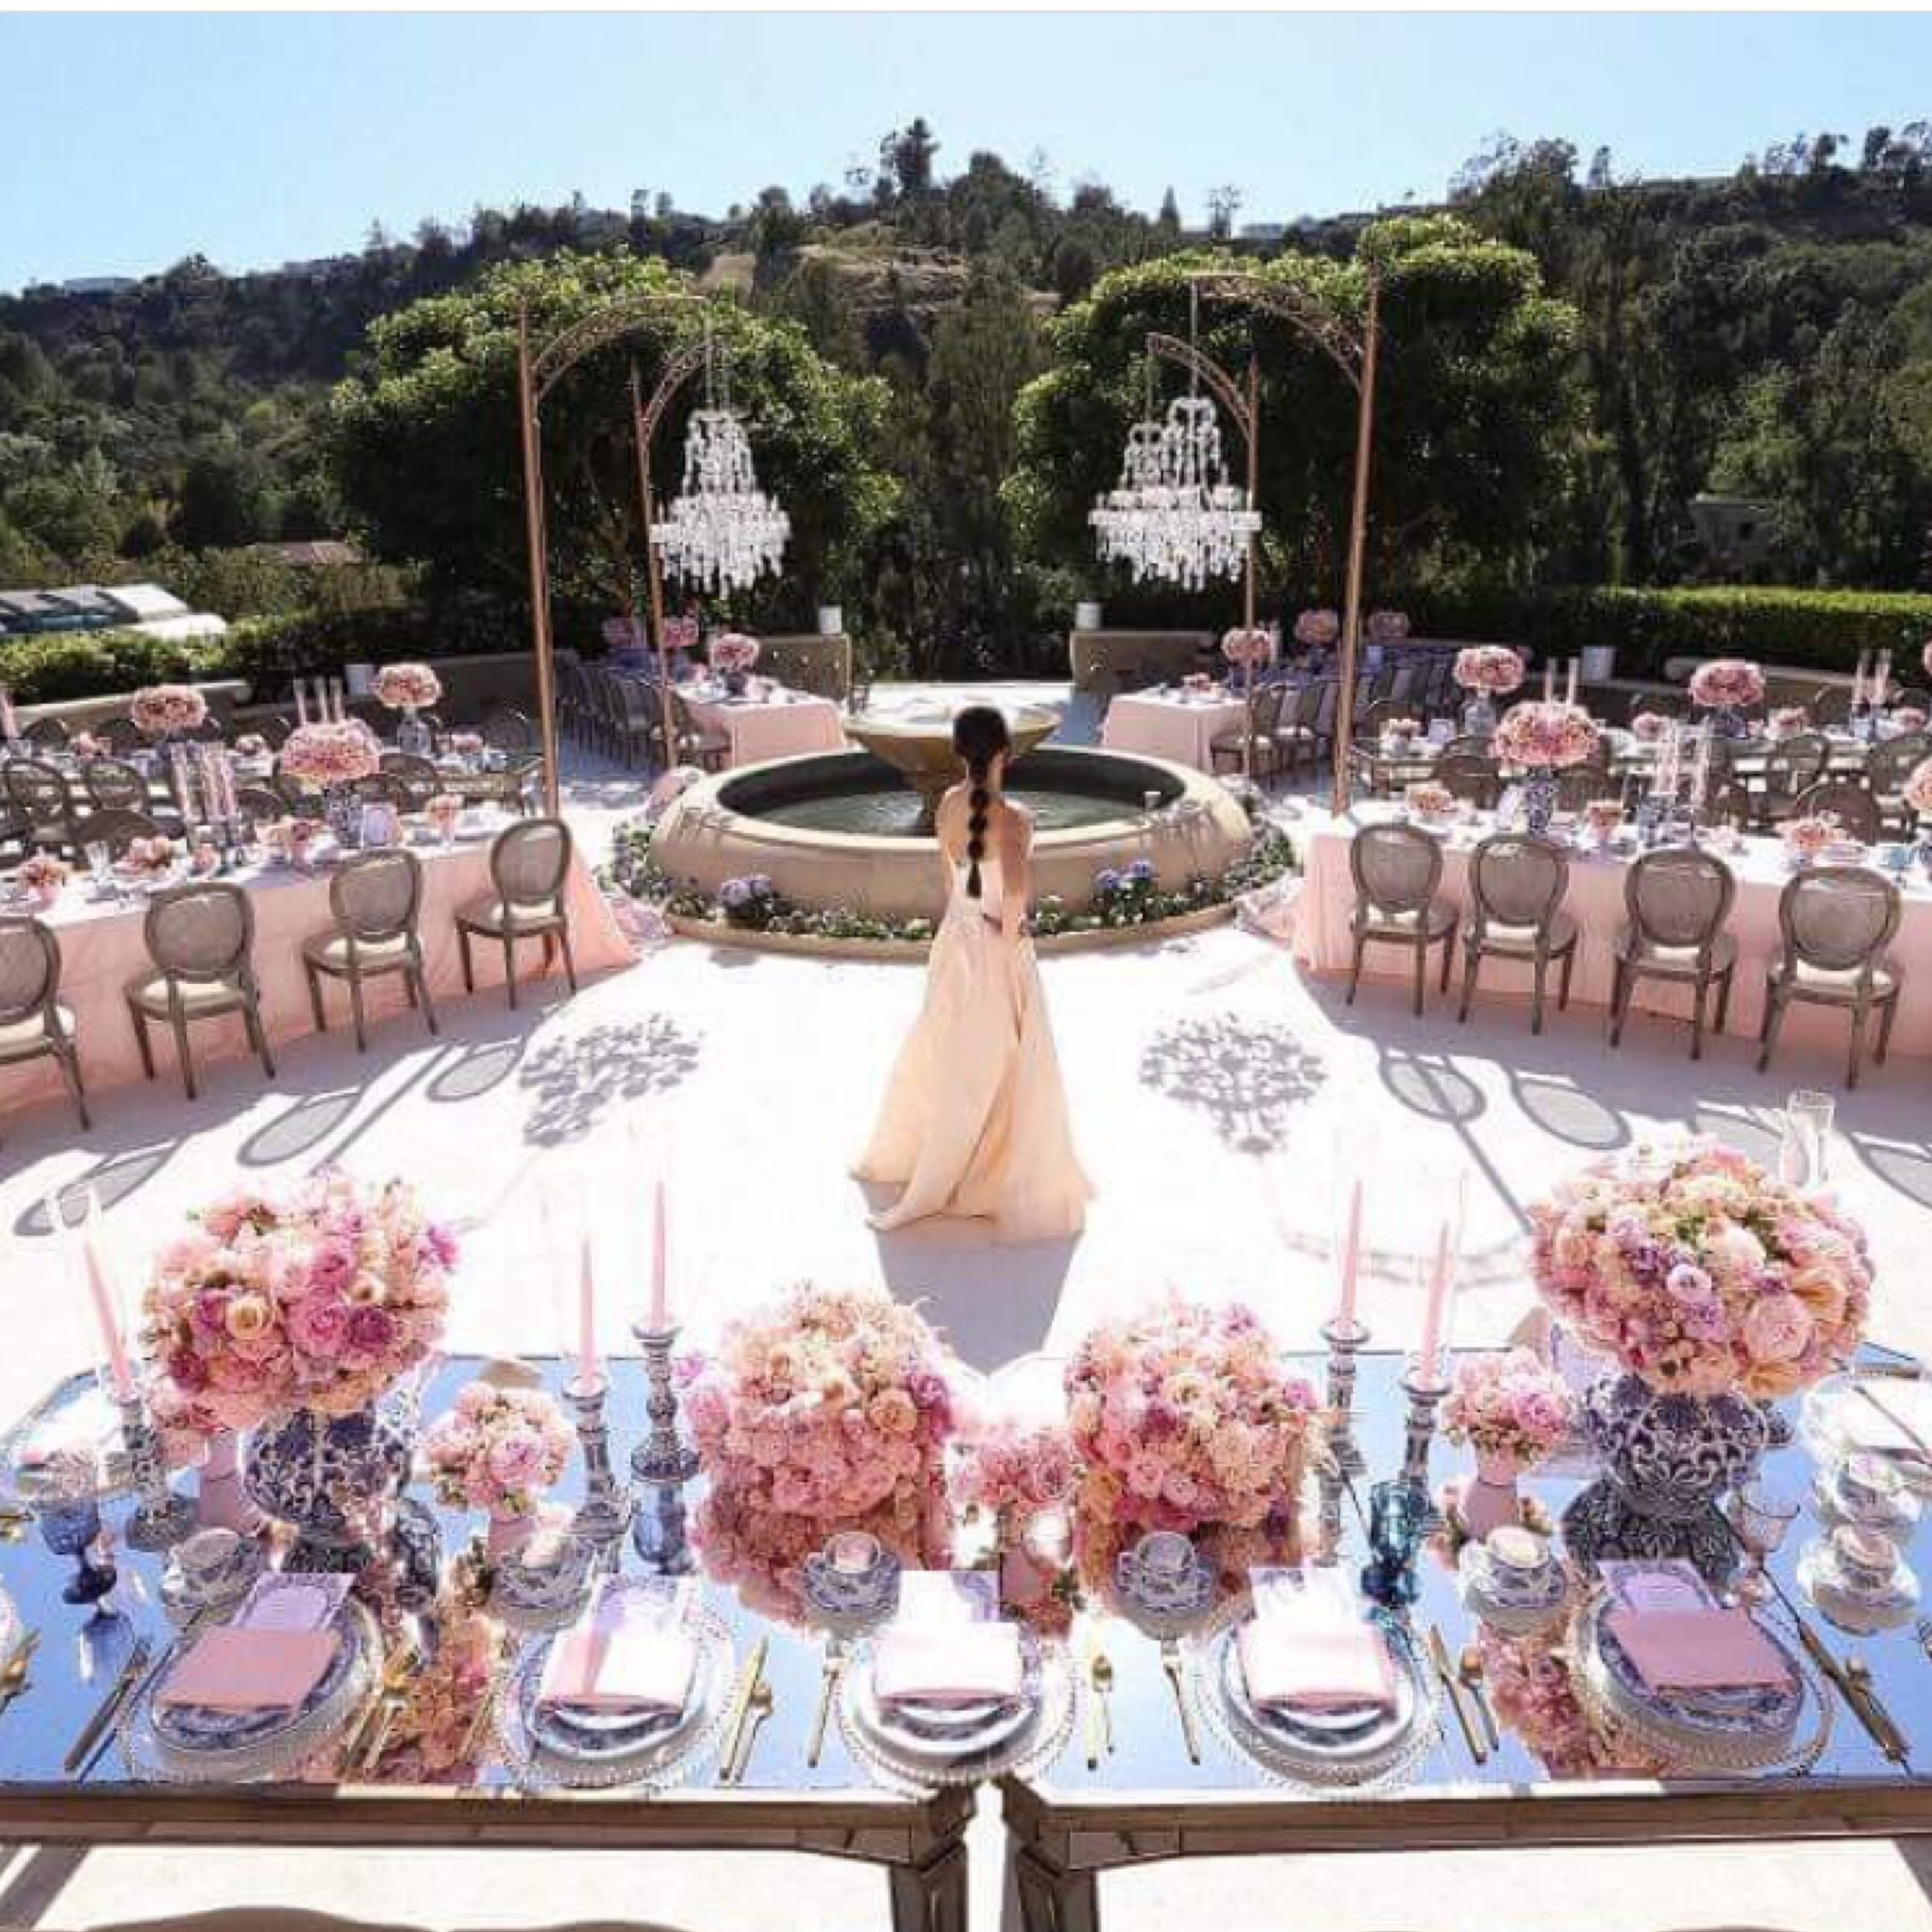 Now thats what you call a fairytale wedding wedding decor now thats what you call a fairytale wedding junglespirit Image collections